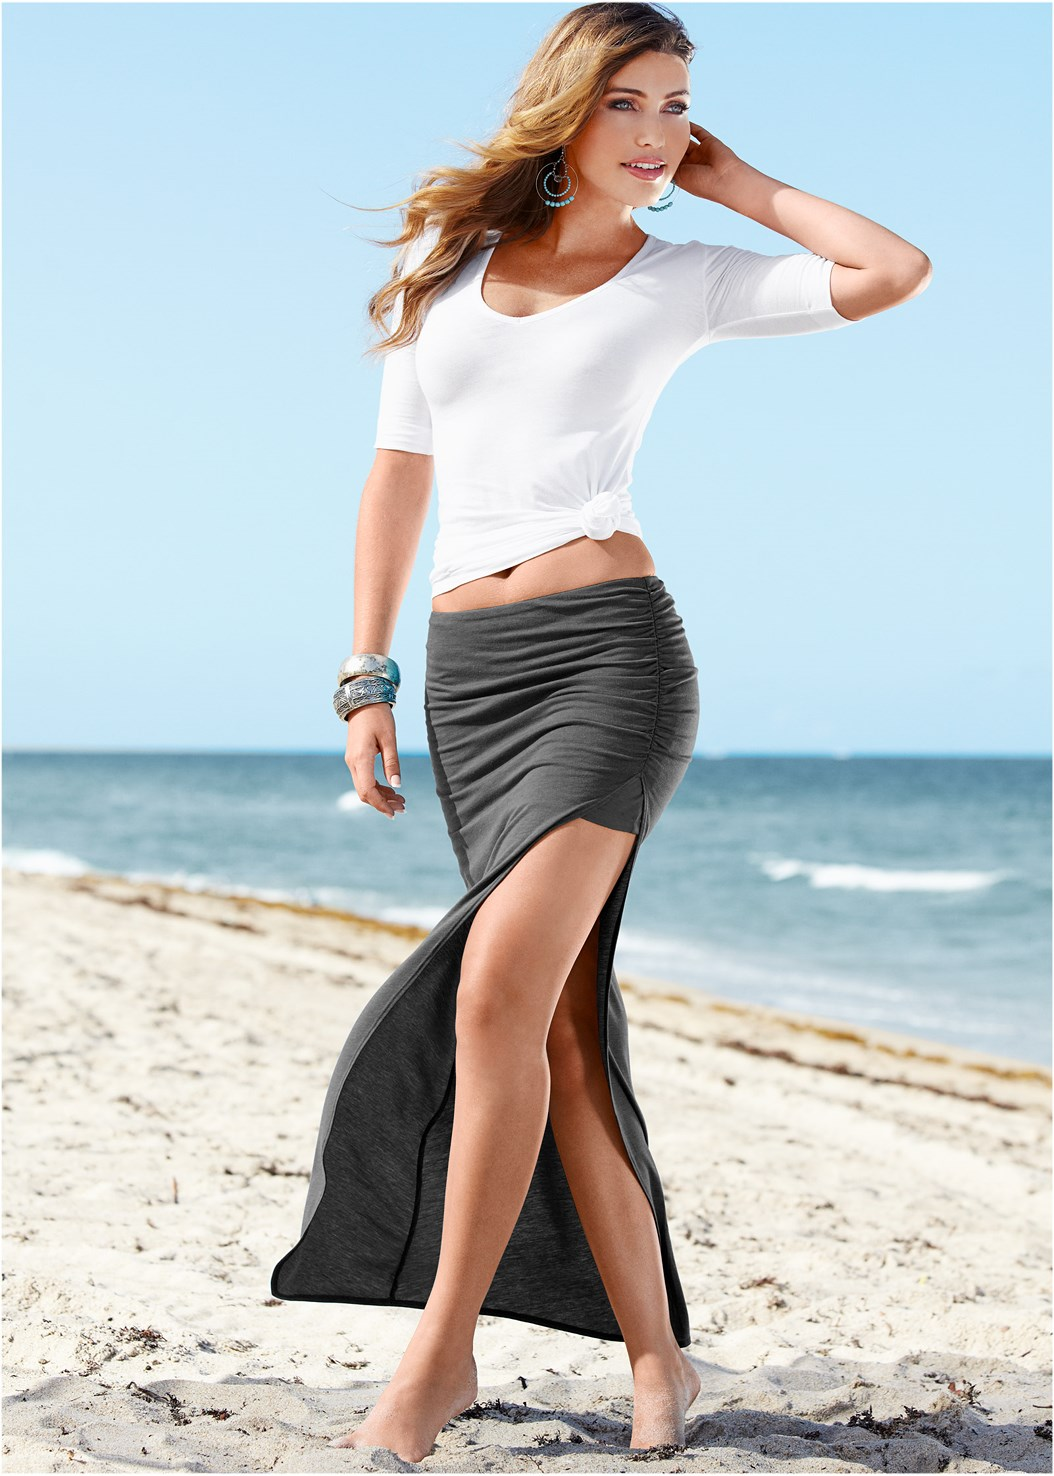 Skirt With High Slit